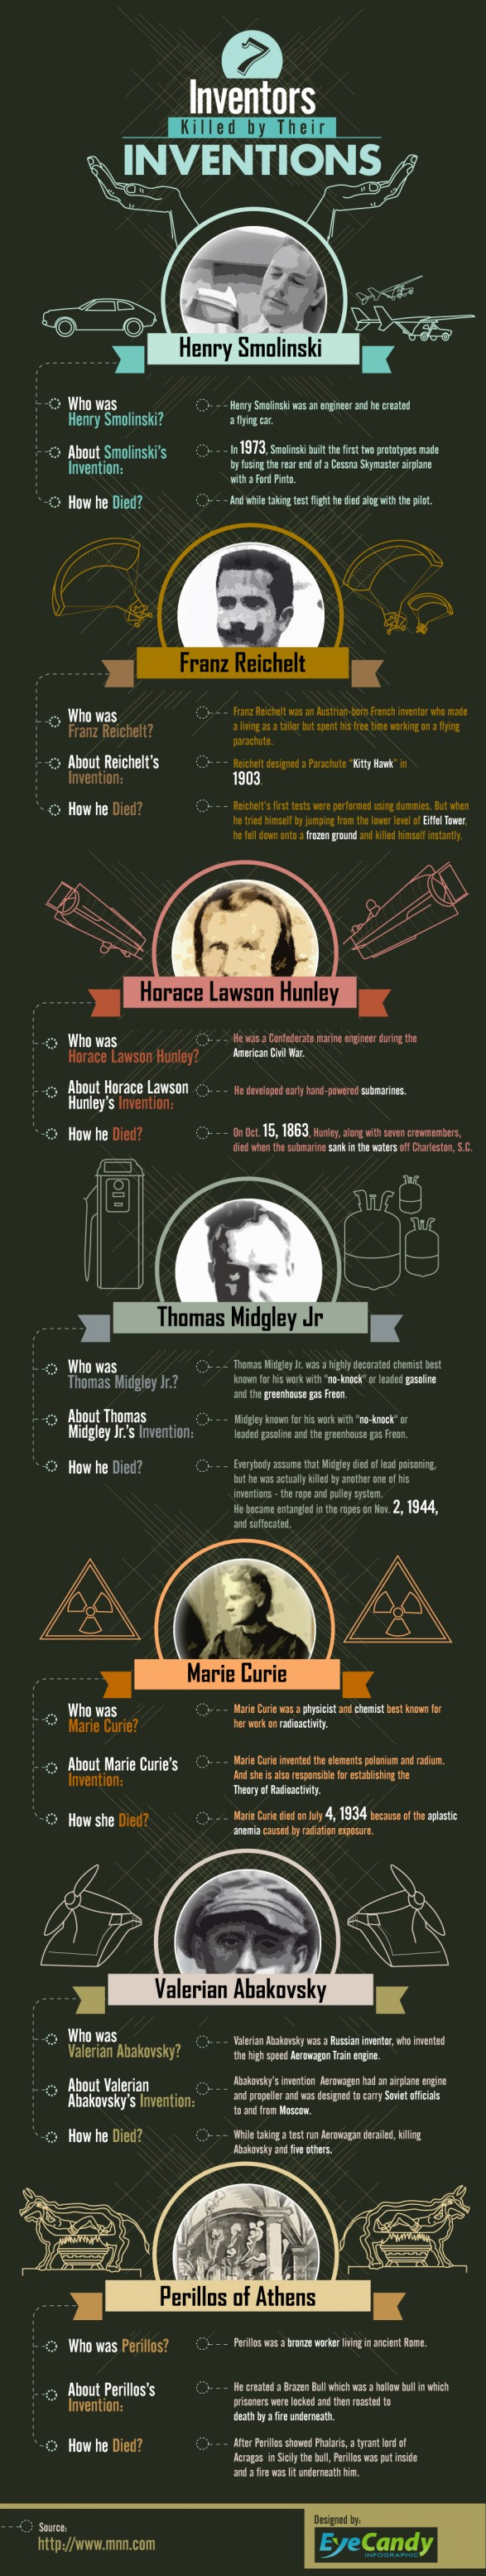 03 7-inventors-killed-by-their-inventions_51a9d304d3f19_w587